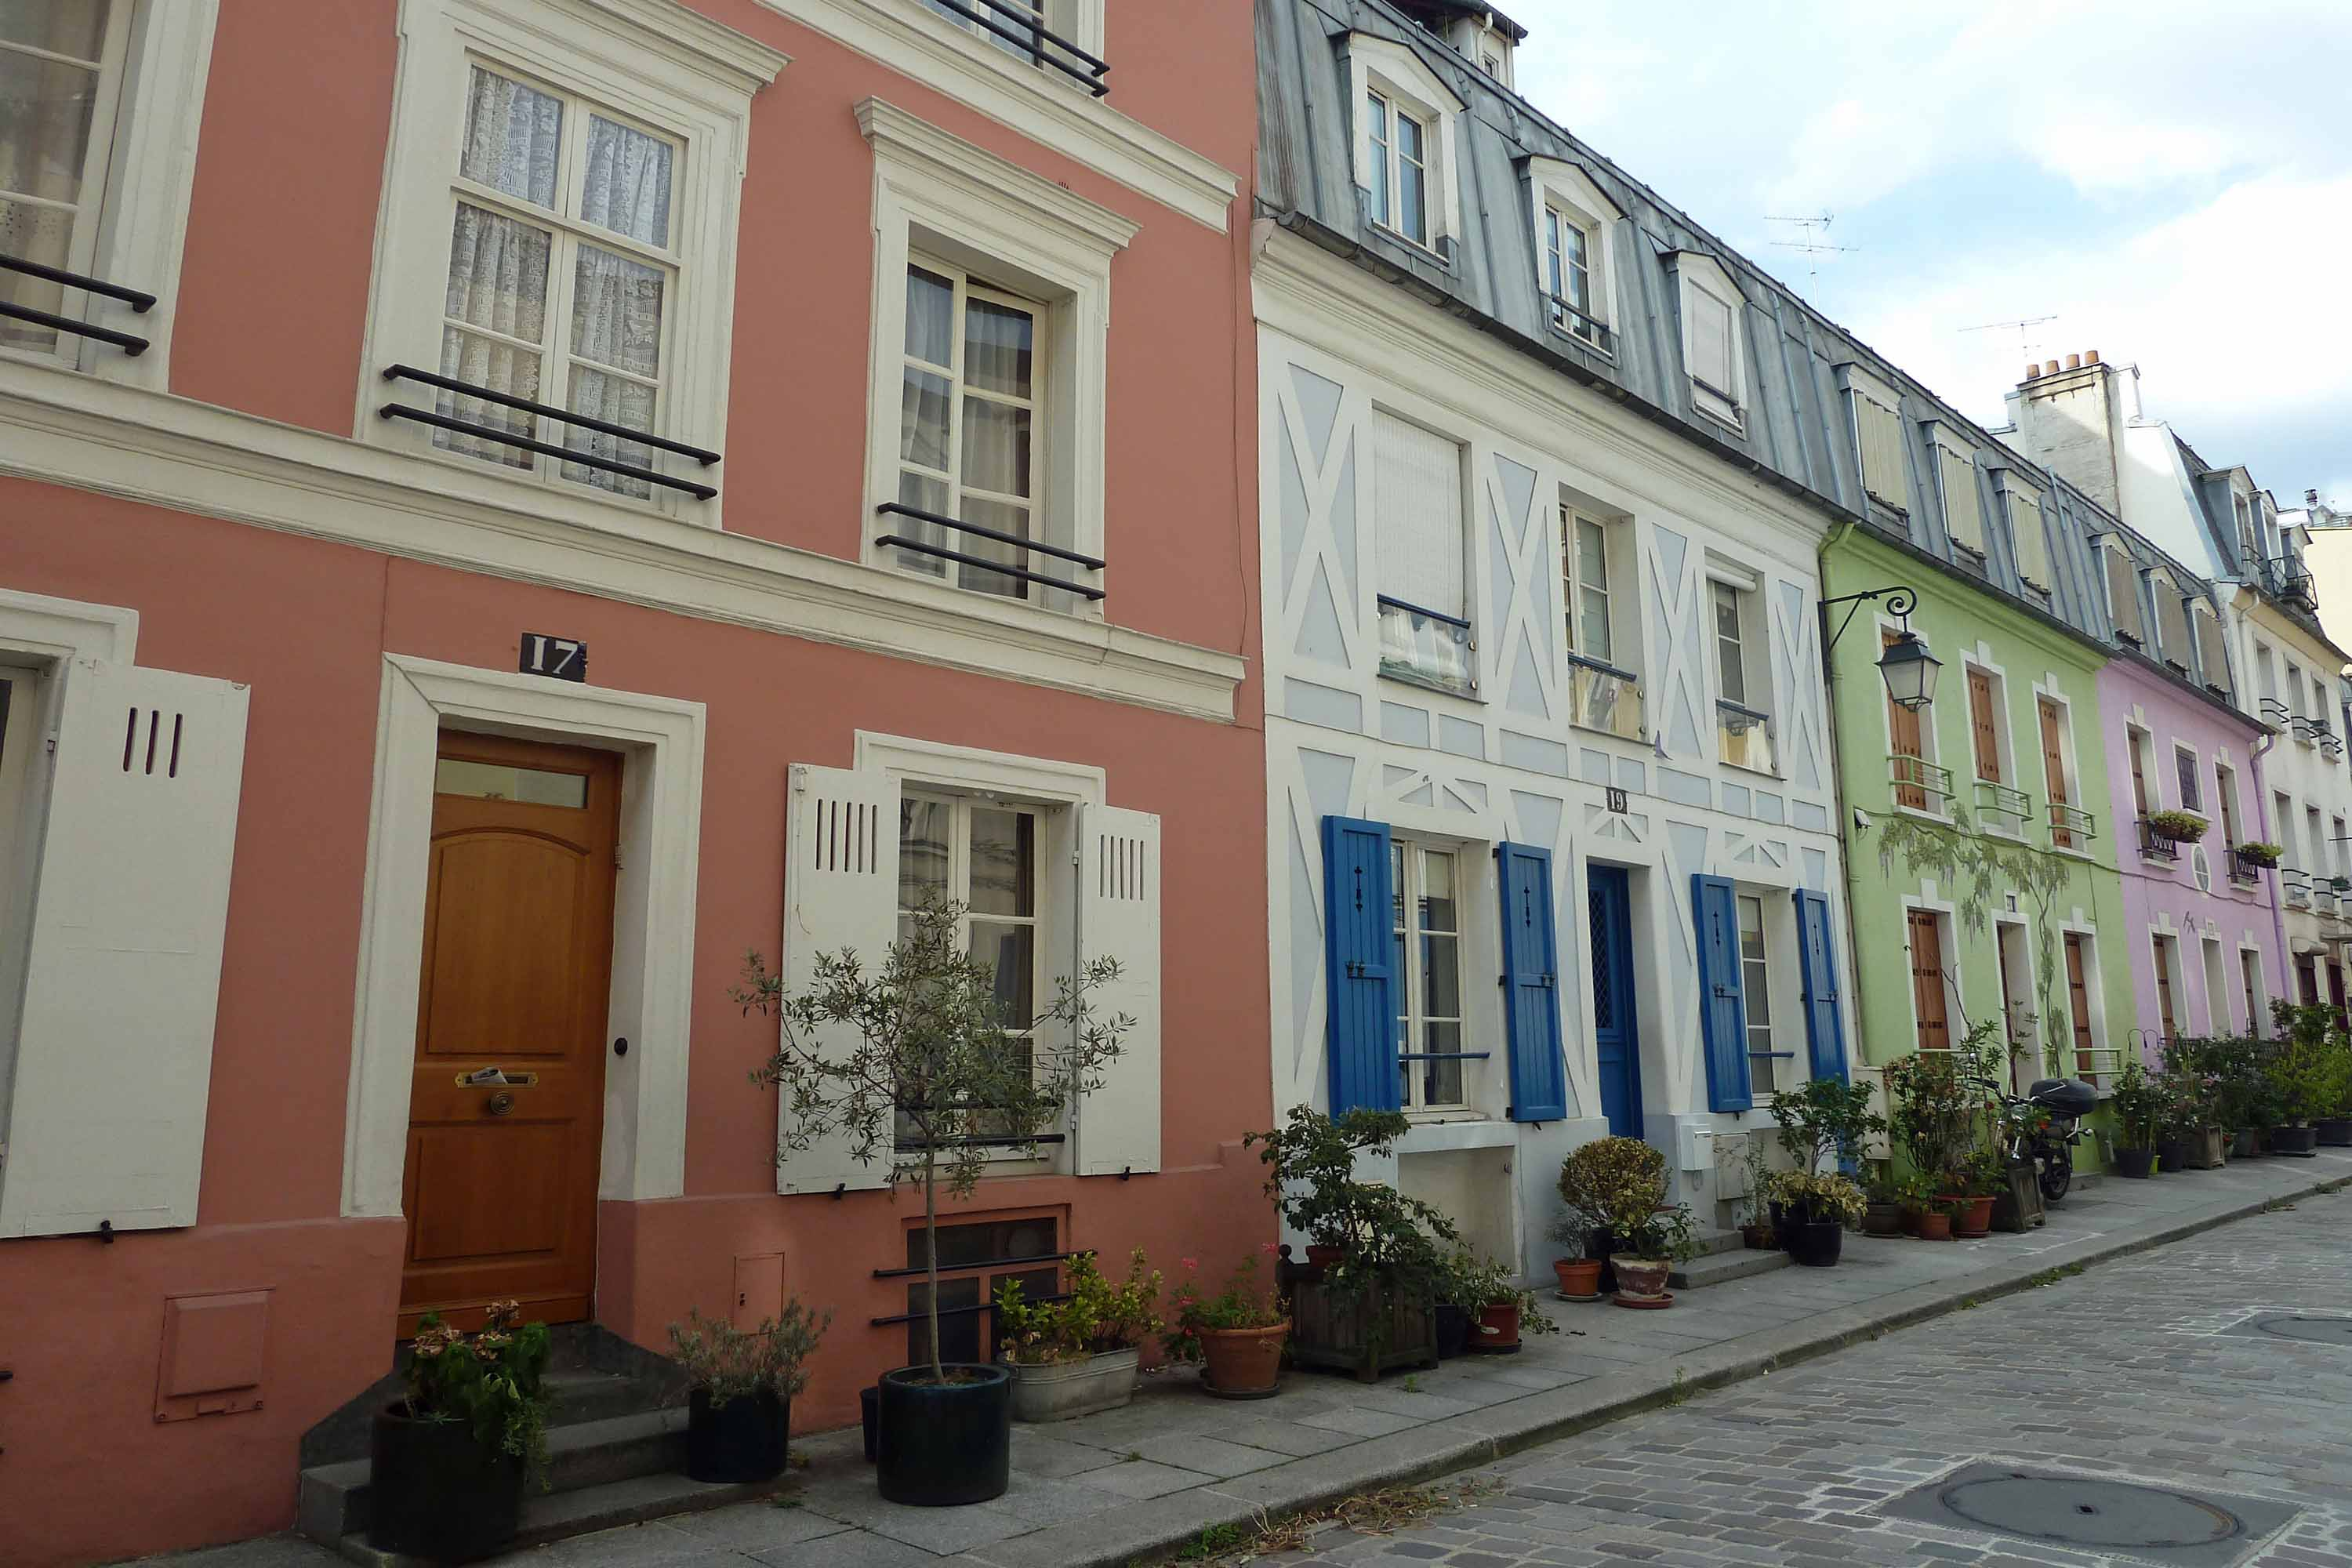 Paris, Crémieux street, coloured houses